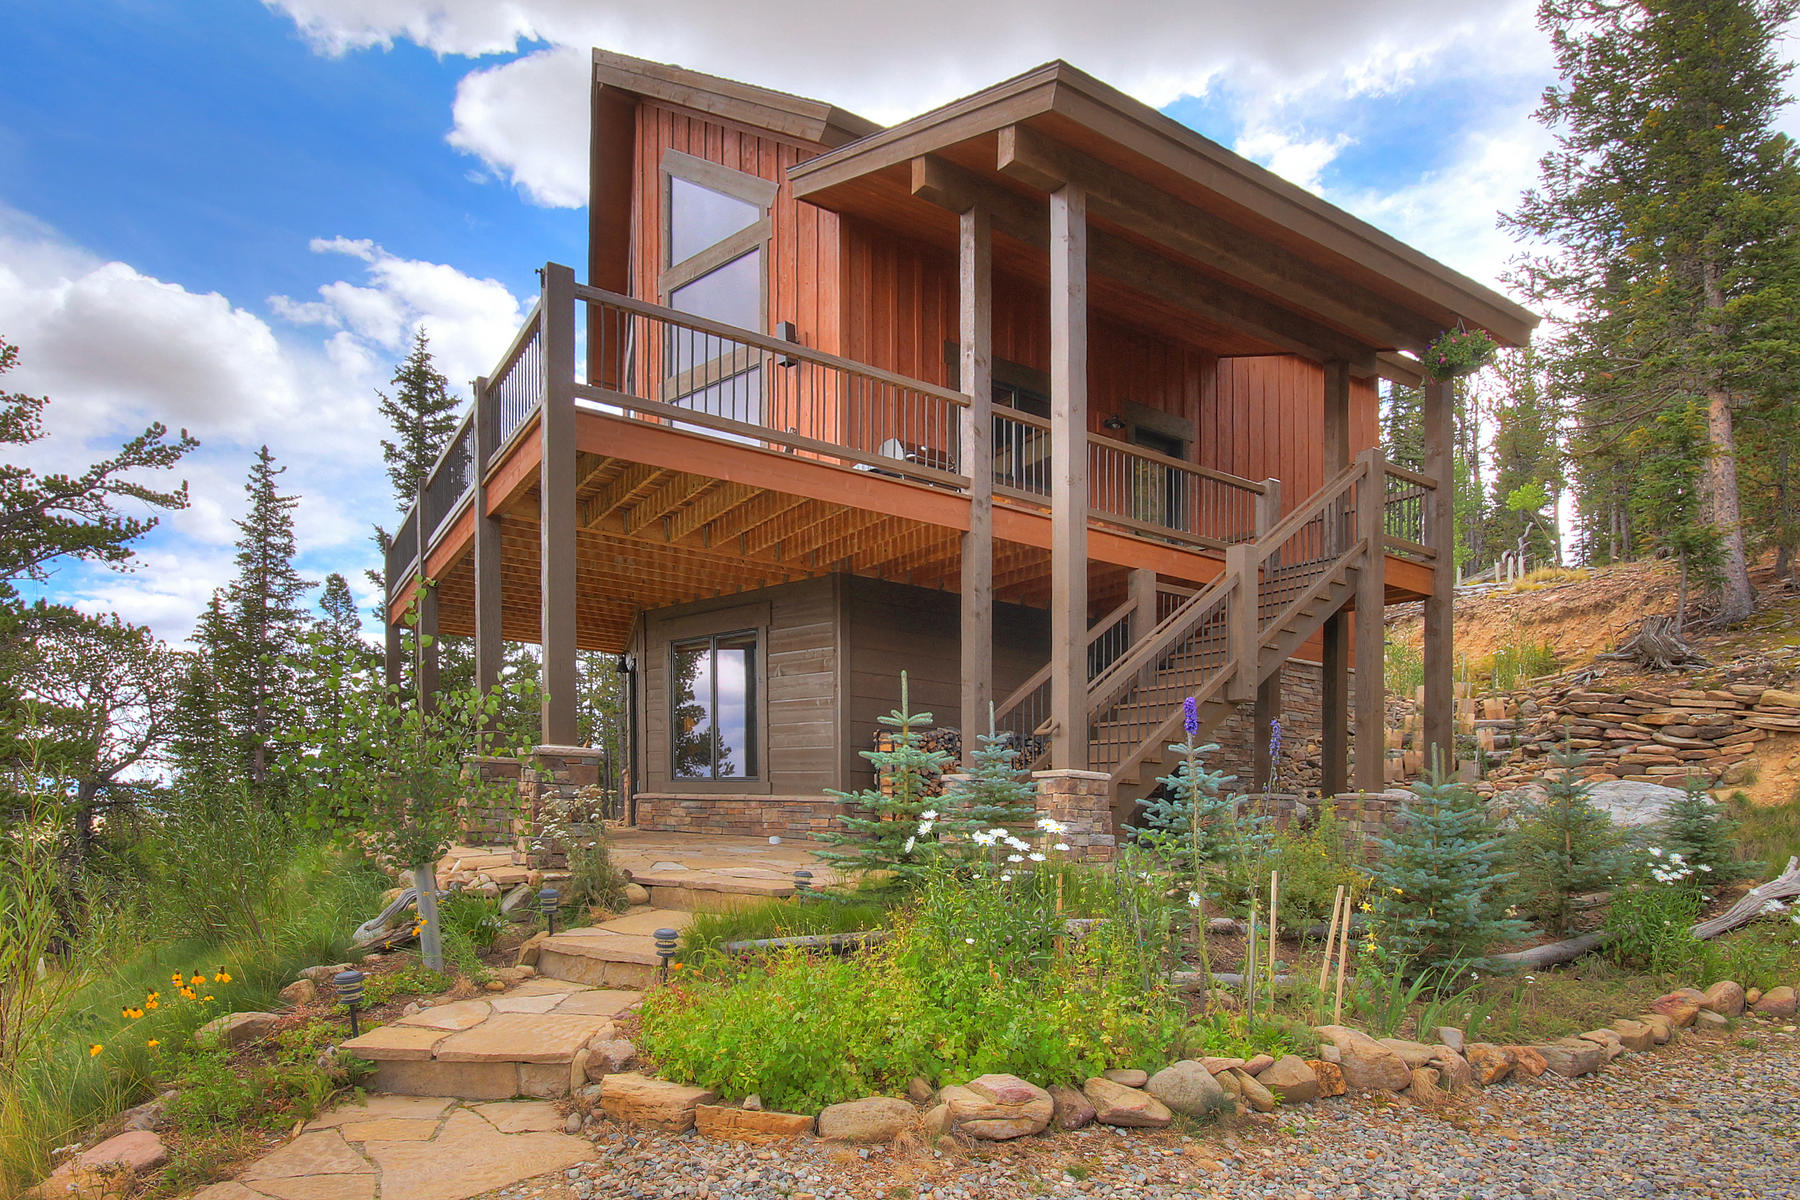 Single Family Home for Active at Contemporary Mountain Home 1665 High Creek Road Fairplay, Colorado 80440 United States